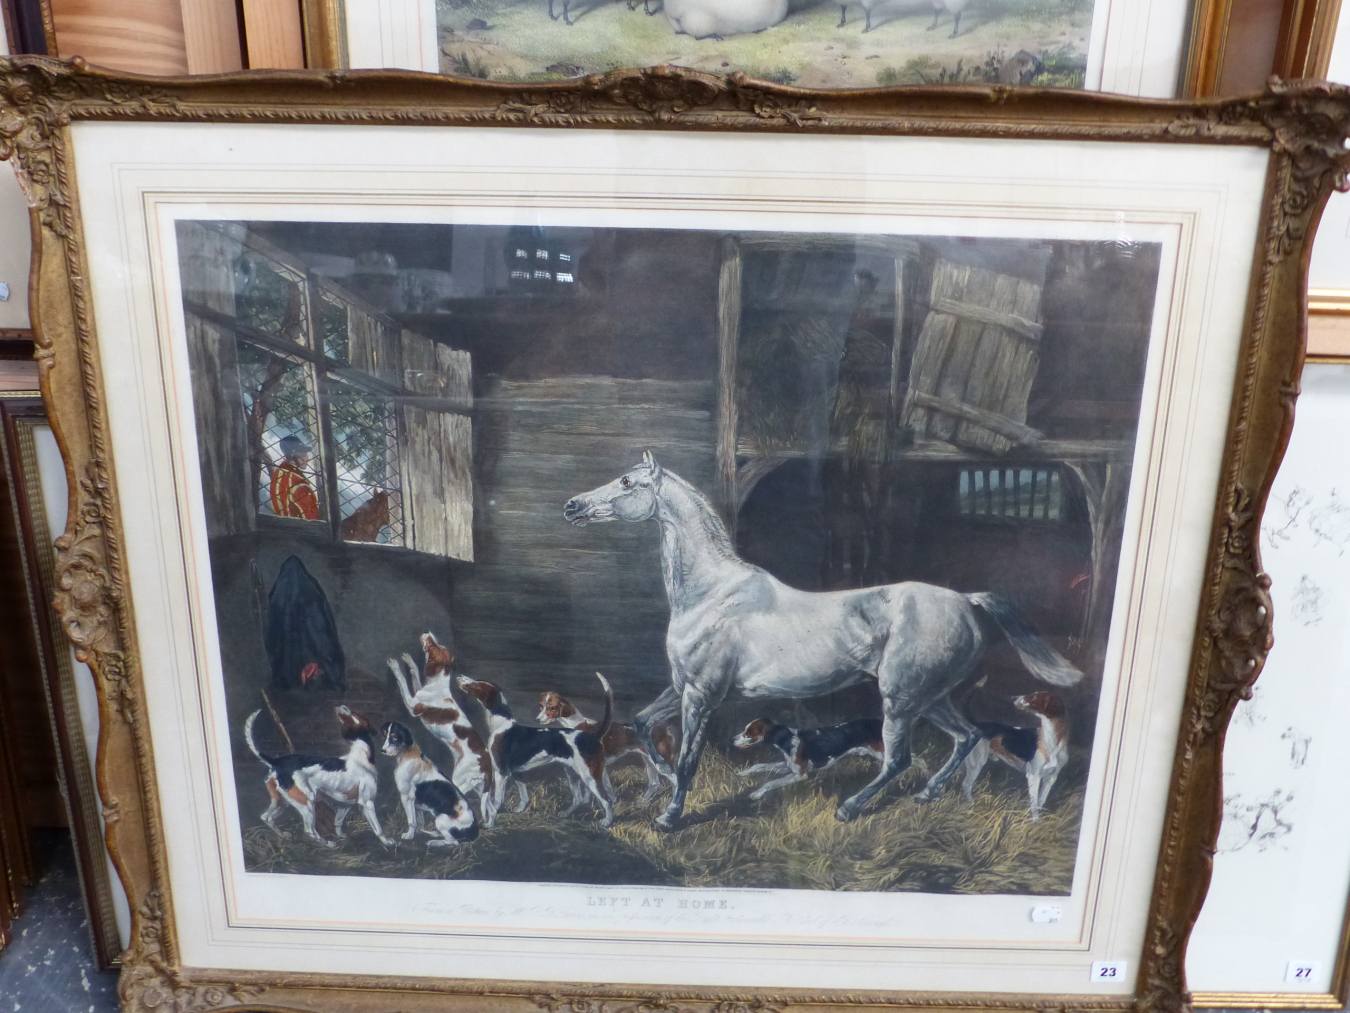 """AFTER R.B. DAVIS. A LARGE HAND COLOURED FOLIO PRINT. TITLED """"LEFT AT HOME"""". 64 x 77cms SWEPT GILT - Image 5 of 5"""